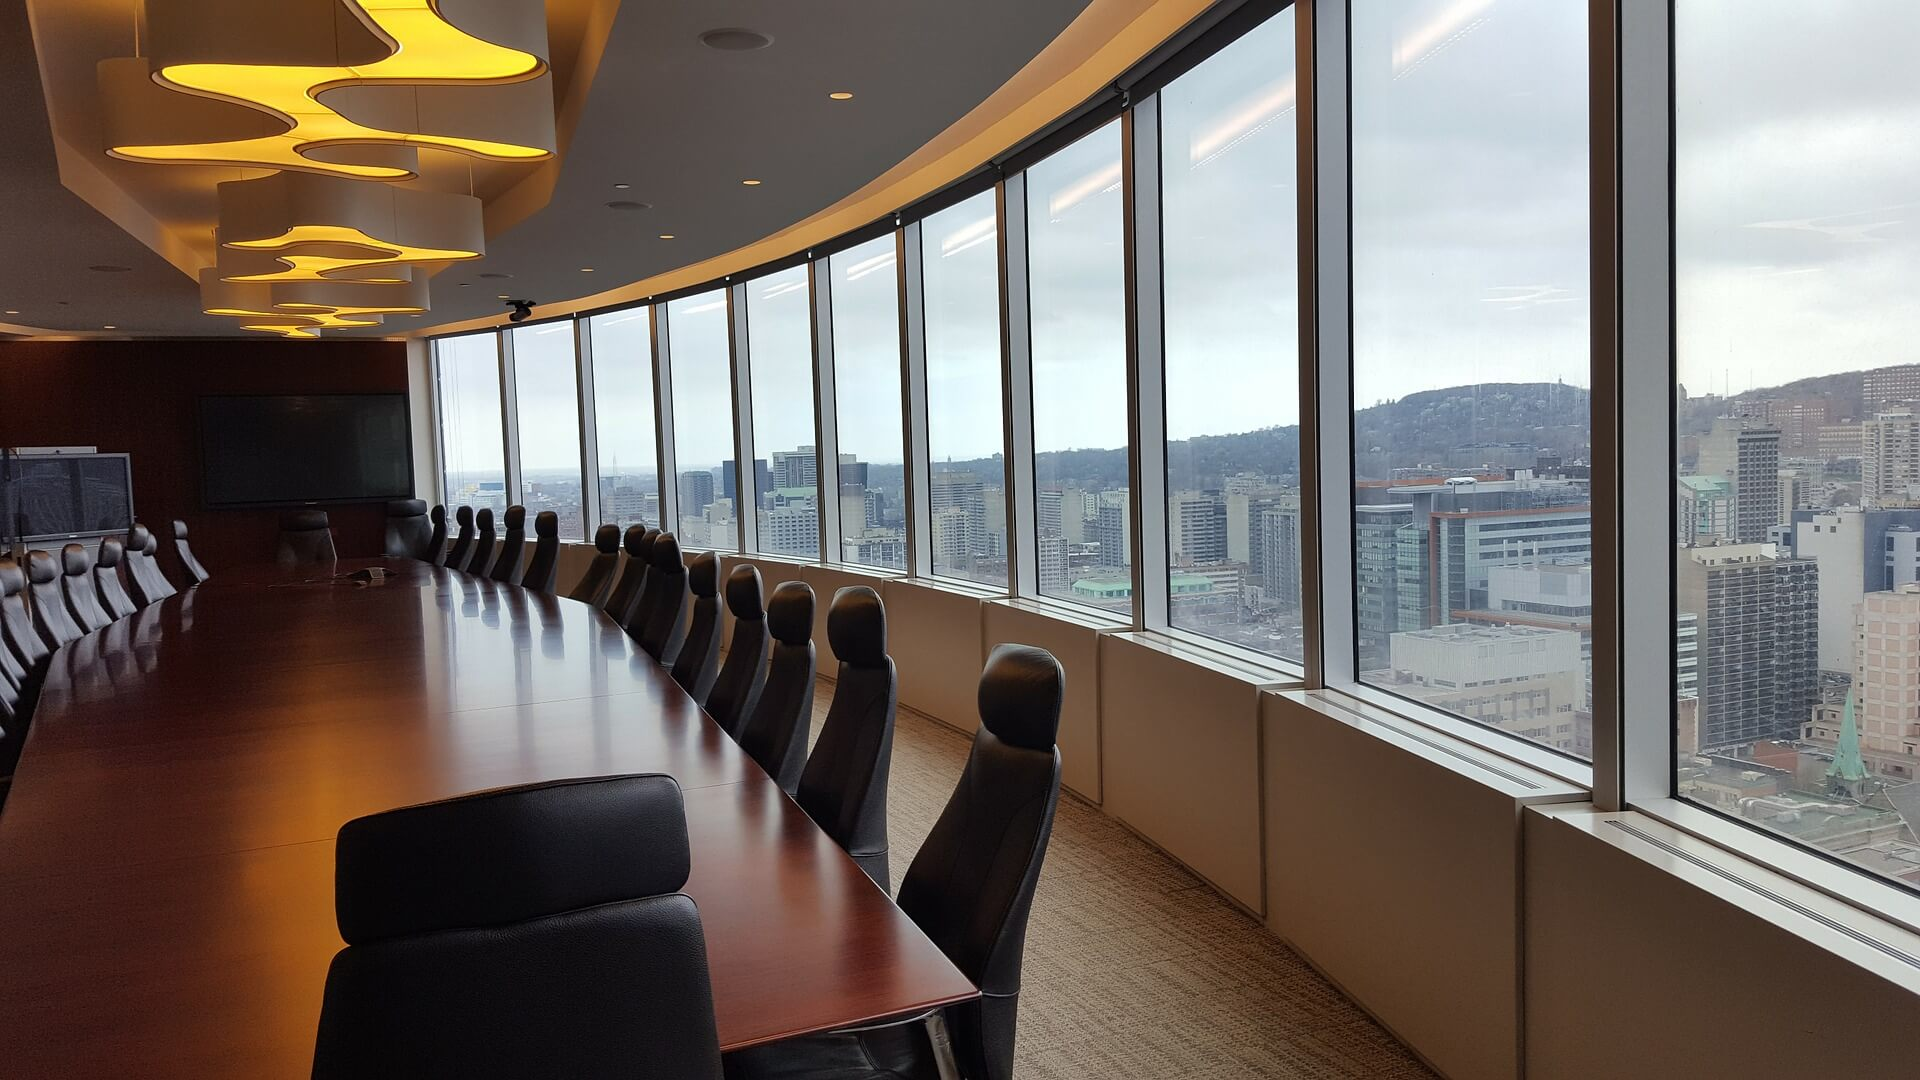 Jeff Jinks Law - Indianapolis Real Estate Attorney - Picture of Boardroom With Window View